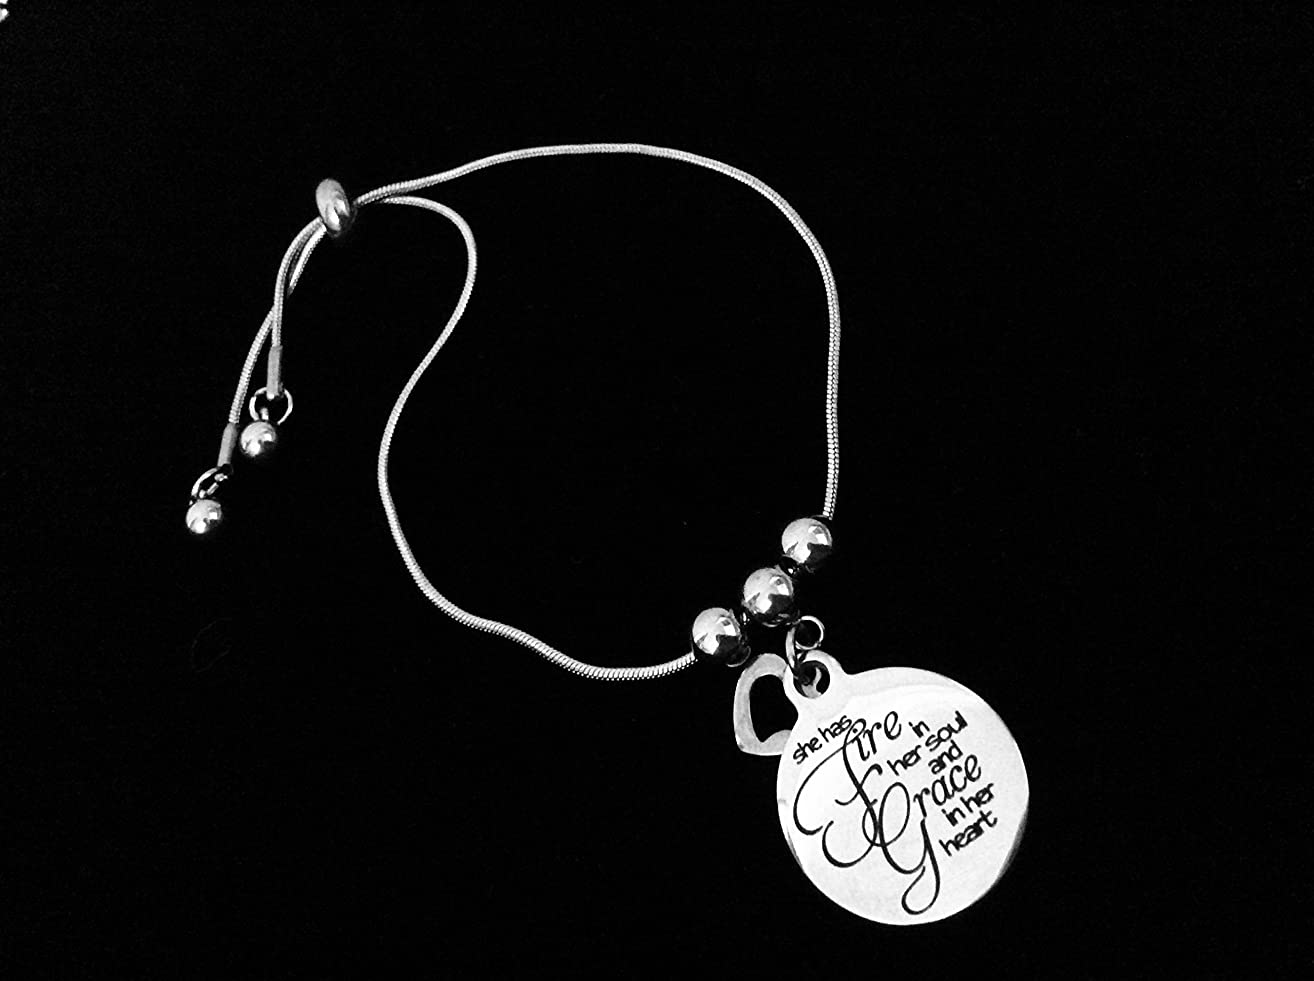 She Has Fire In Her Soul and Grace in Her Heart Bolo Bracelet Stainless Steel Adjustable Bracelet Gift Message Charm Bracelet One Size Fits All